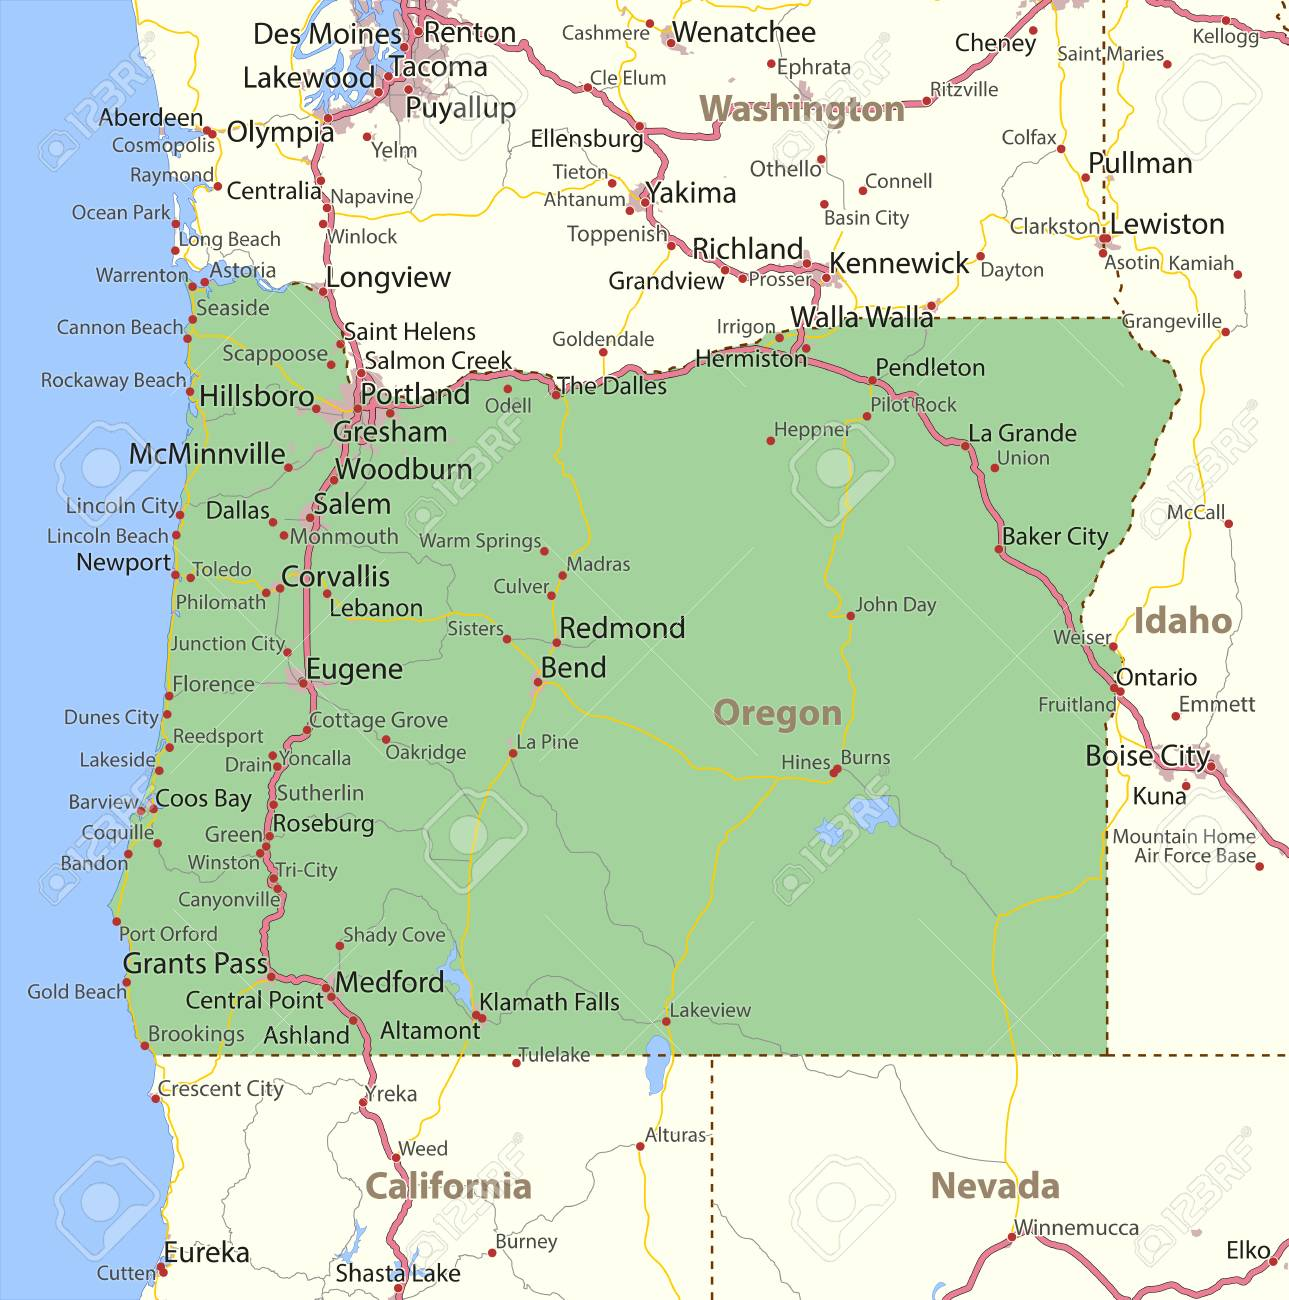 Irrigon Oregon Map.Map Of Oregon Shows State Borders Urban Areas Place Names